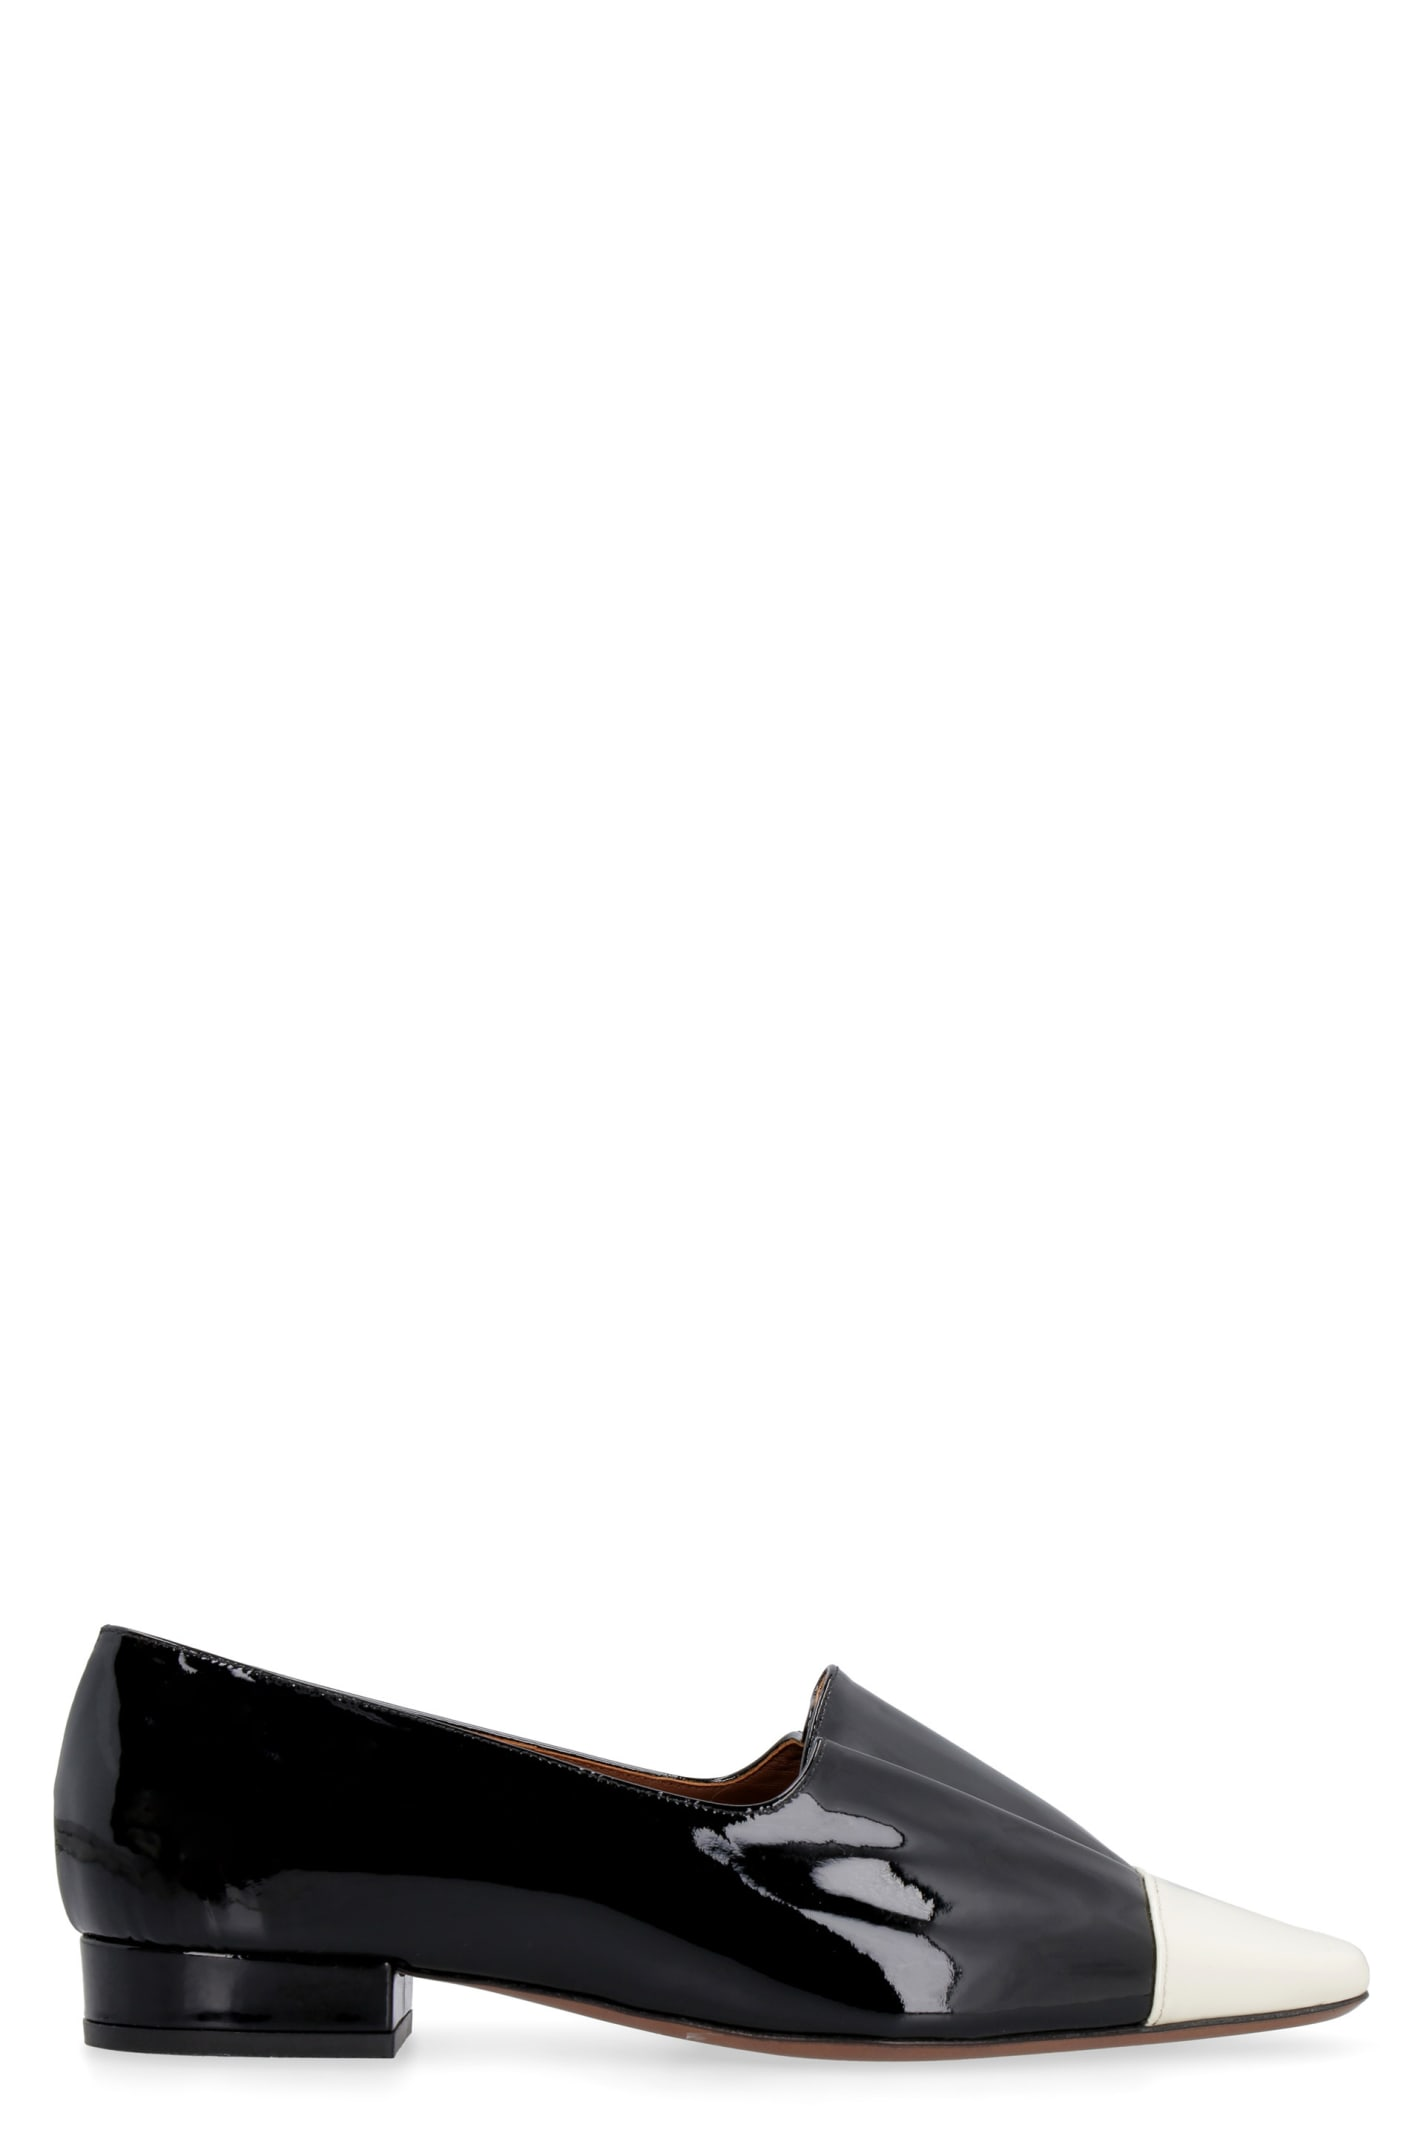 LAutre Chose Madeleine Patent Leather Loafer